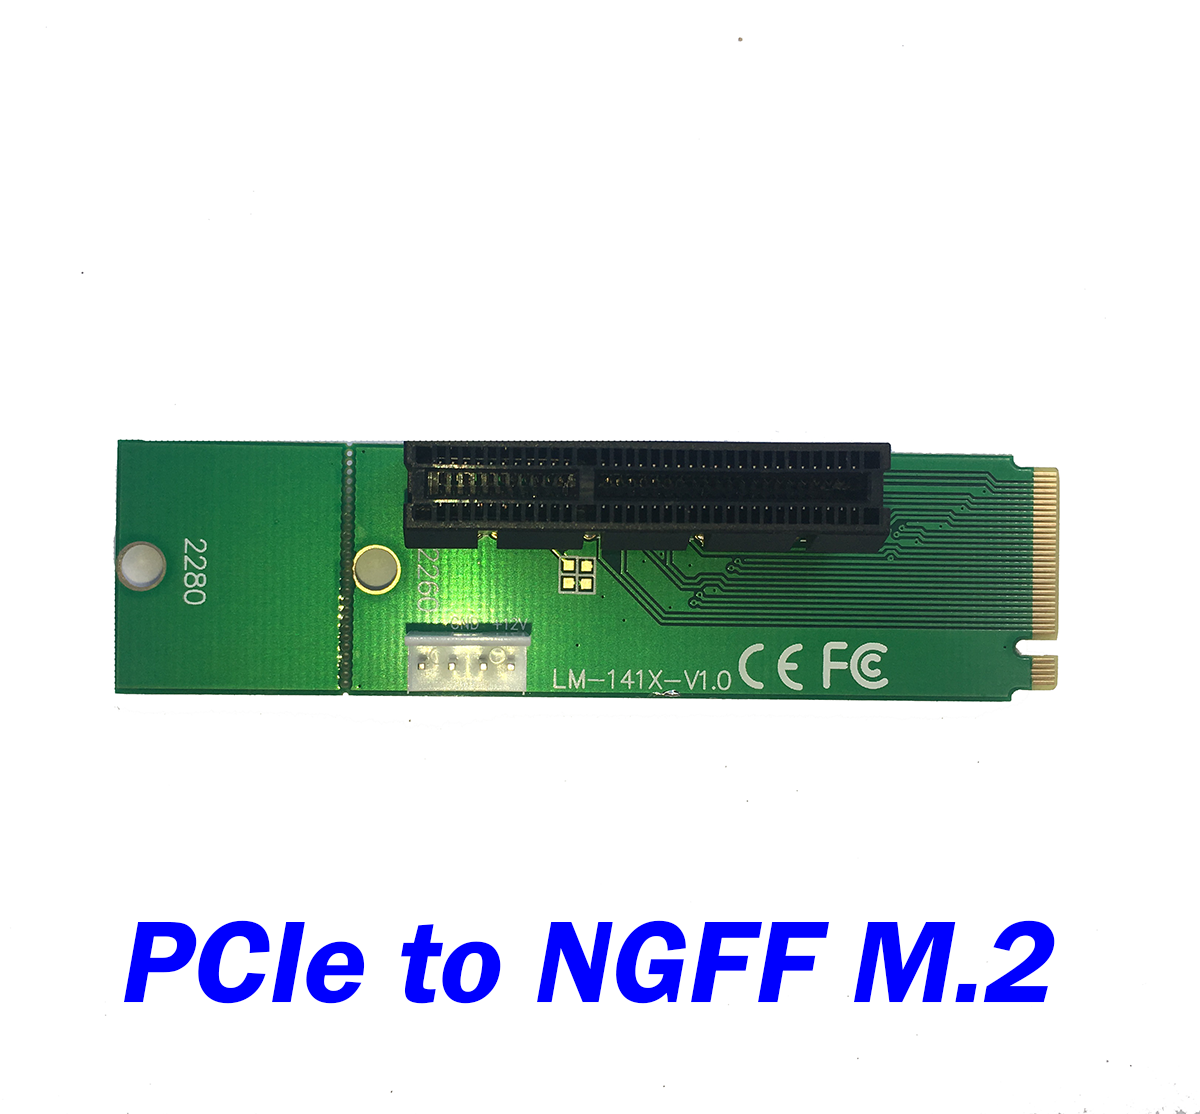 M 2 Pcie Adapter Pakistan Adapter Nikon To Sony E Mount Wifi Adapter Gone From Laptop Adapter Adapter Meaning: PCIe 4x To NGFF M.2 Adapter With 4 Pin Power Cable